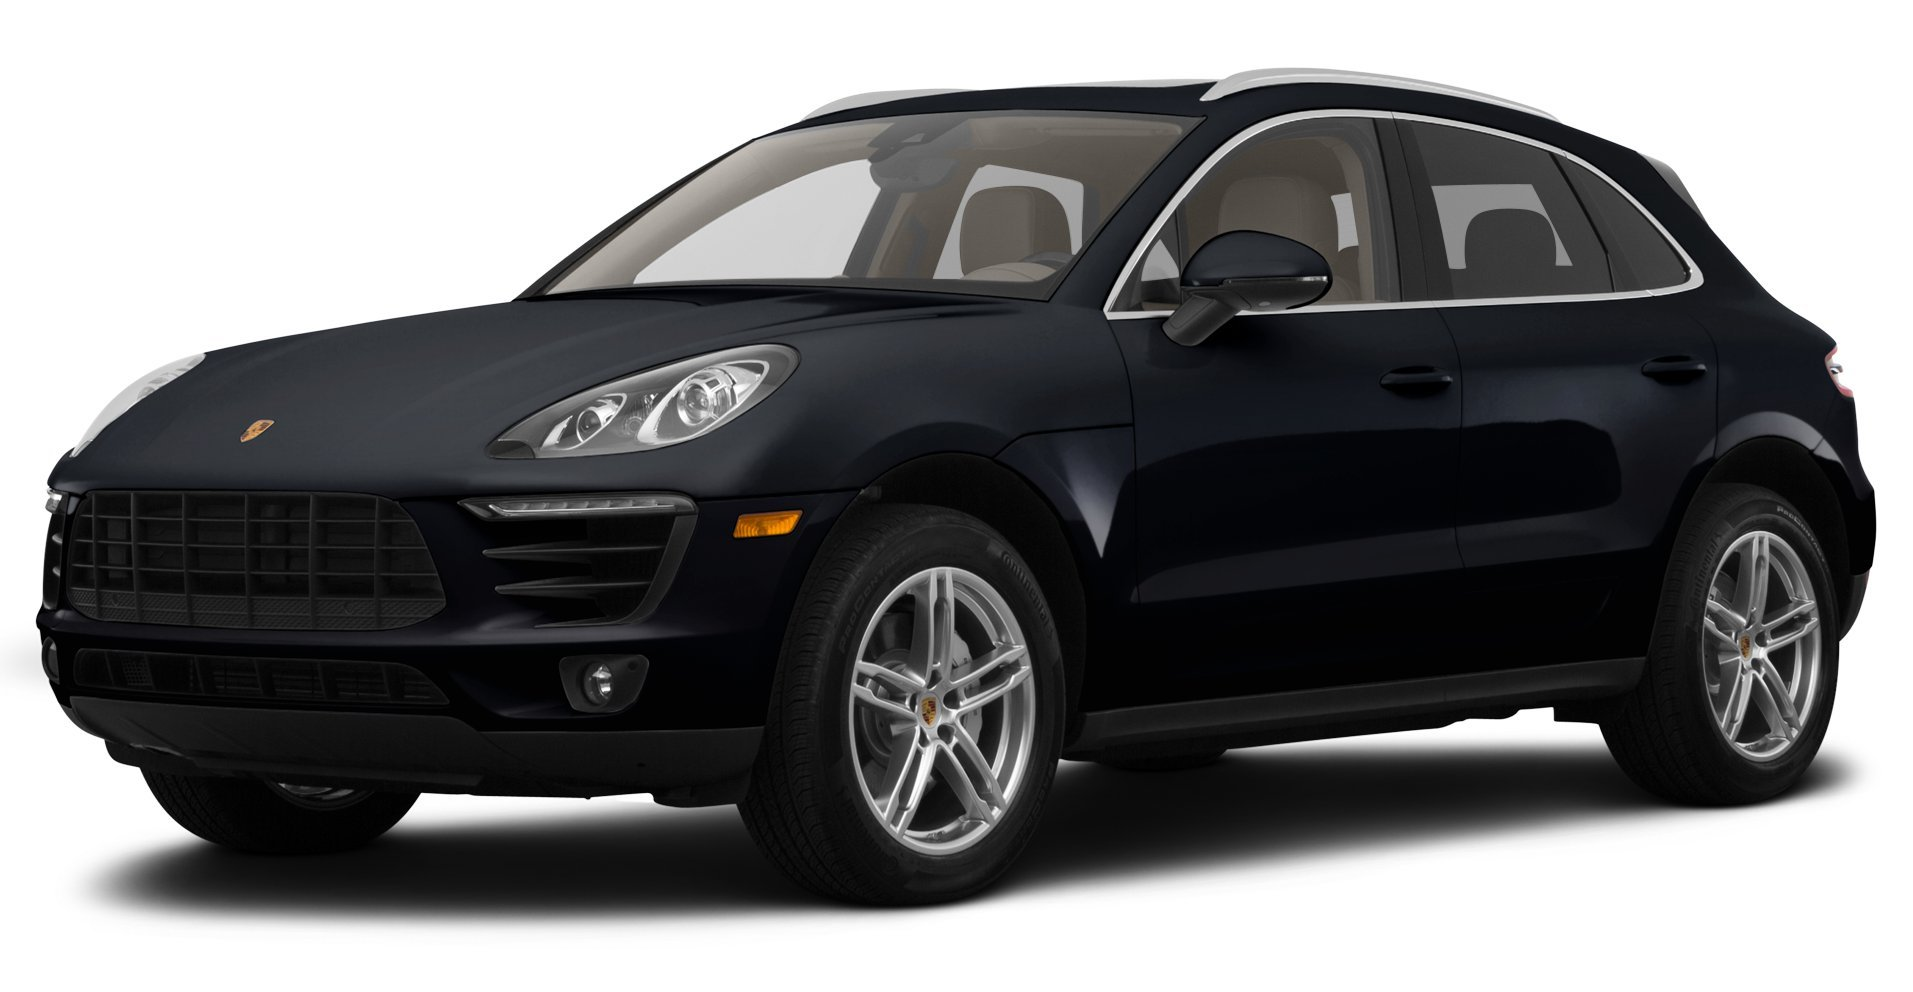 Amazon Com 2017 Porsche Macan Reviews Images And Specs Vehicles